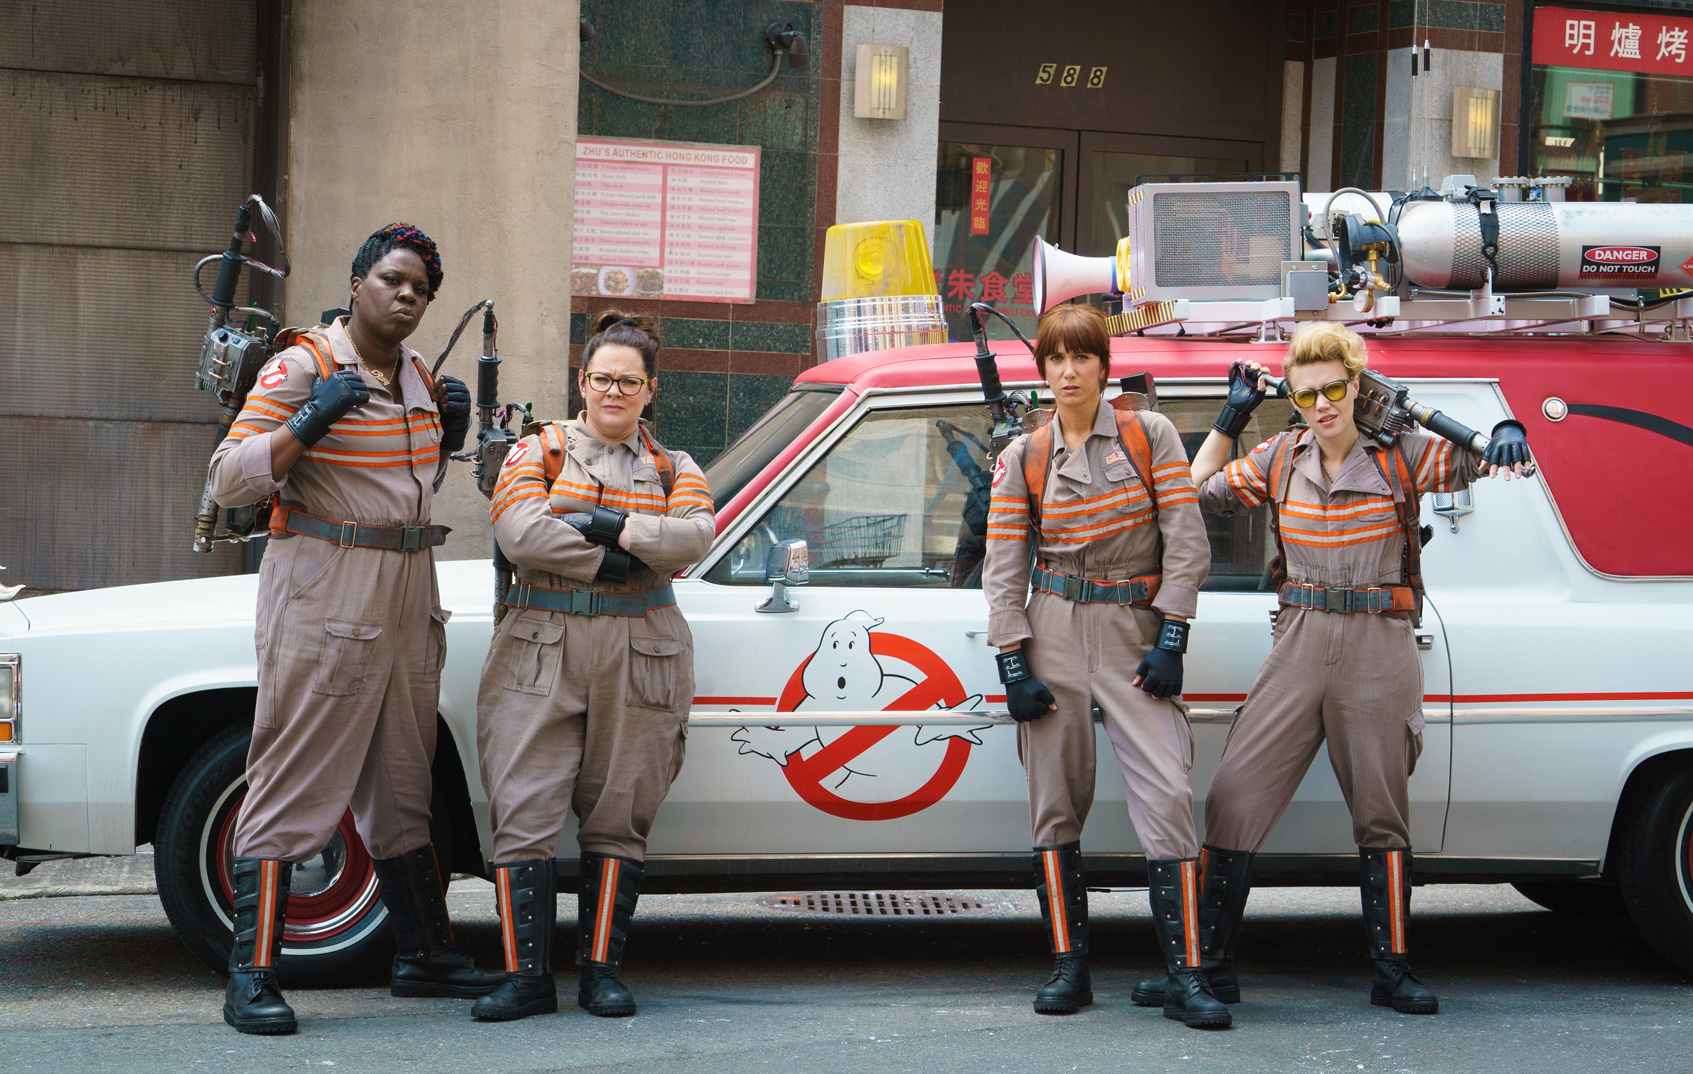 5 things we learned from the new Ghostbusters